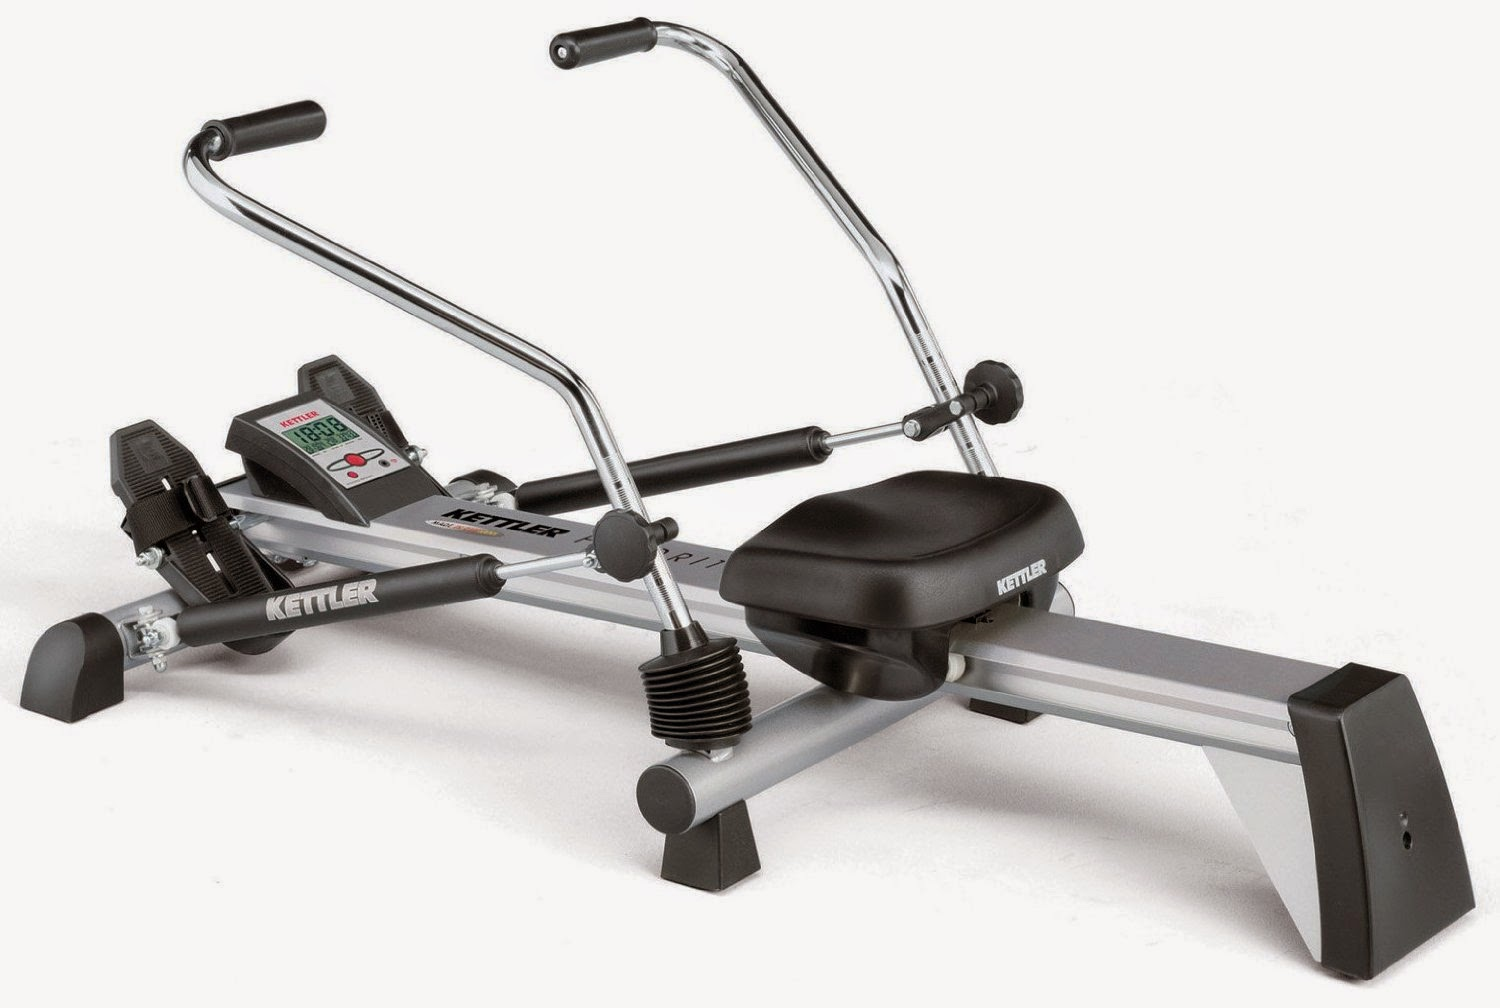 Kettler Favorit Rowing Machine, review, offer circular rowing motion with 2 hydraulic cylinders to control resistance, padded seat, smooth gliding action, compare with Kettler Kadett